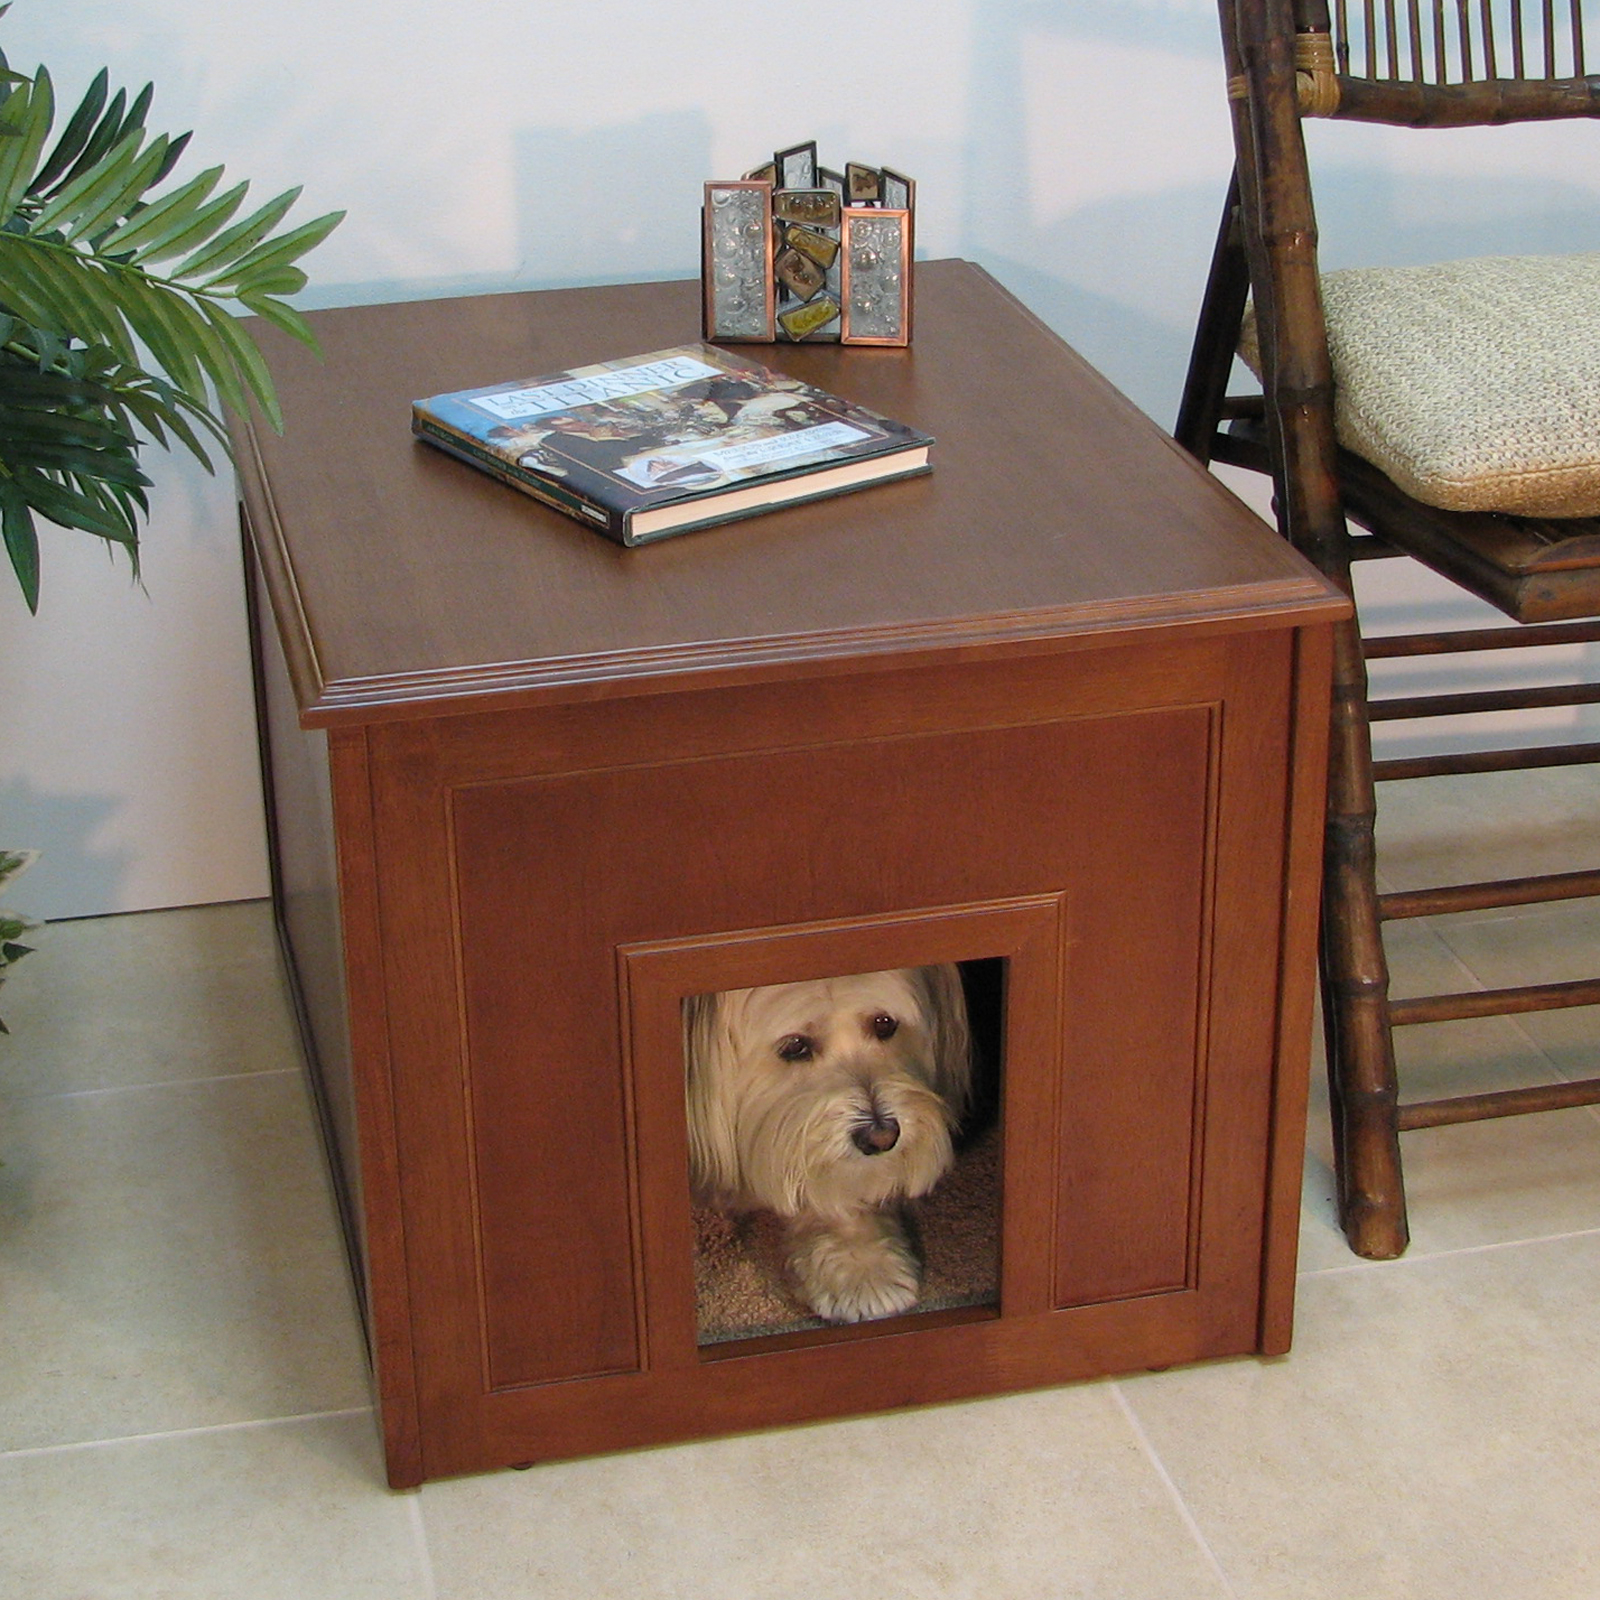 Dog Den Cabinet Indoor Dog House